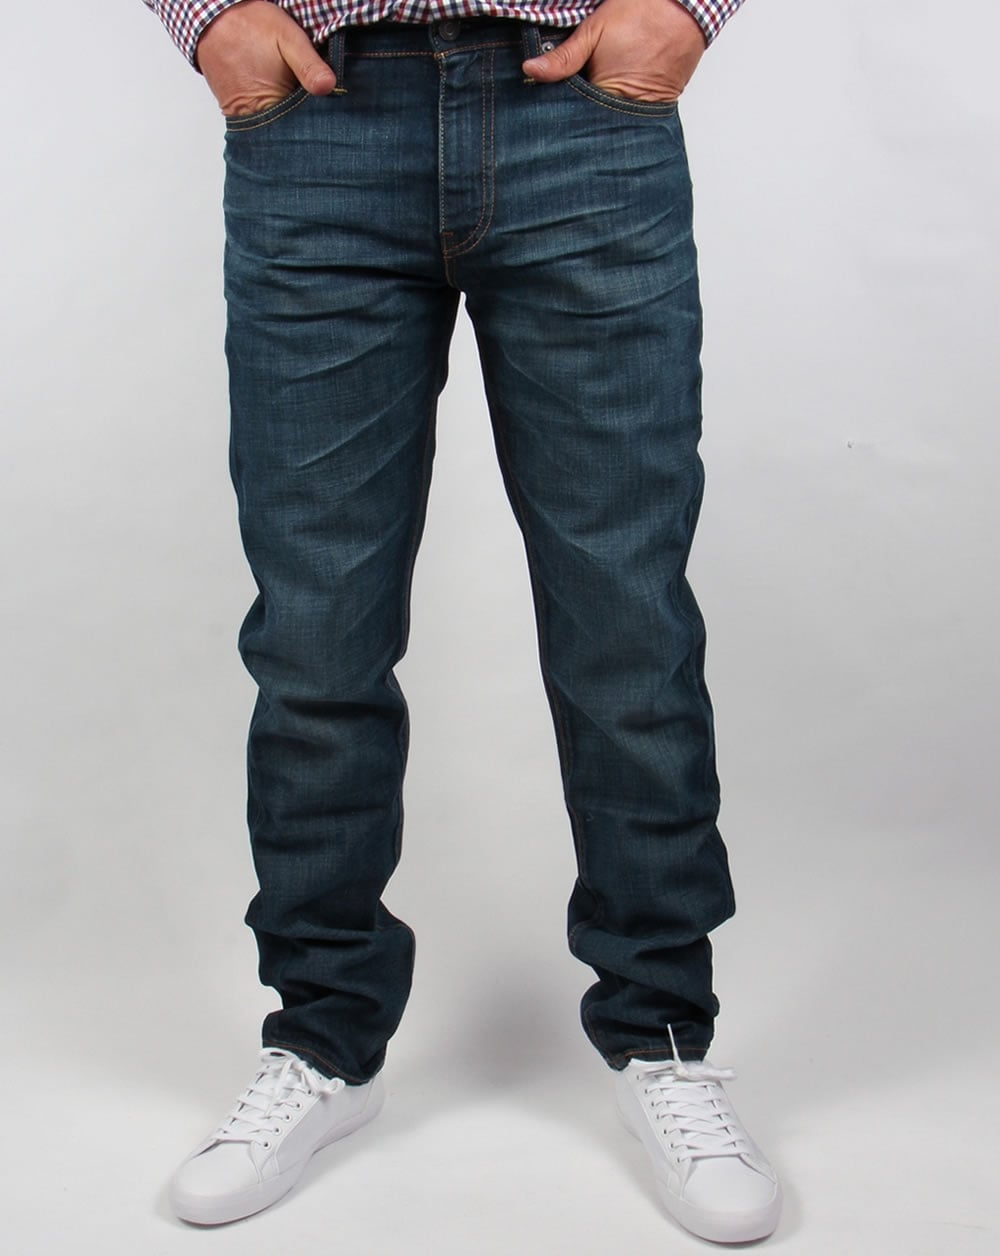 levis 511 slim fit jeans explorer denim mens